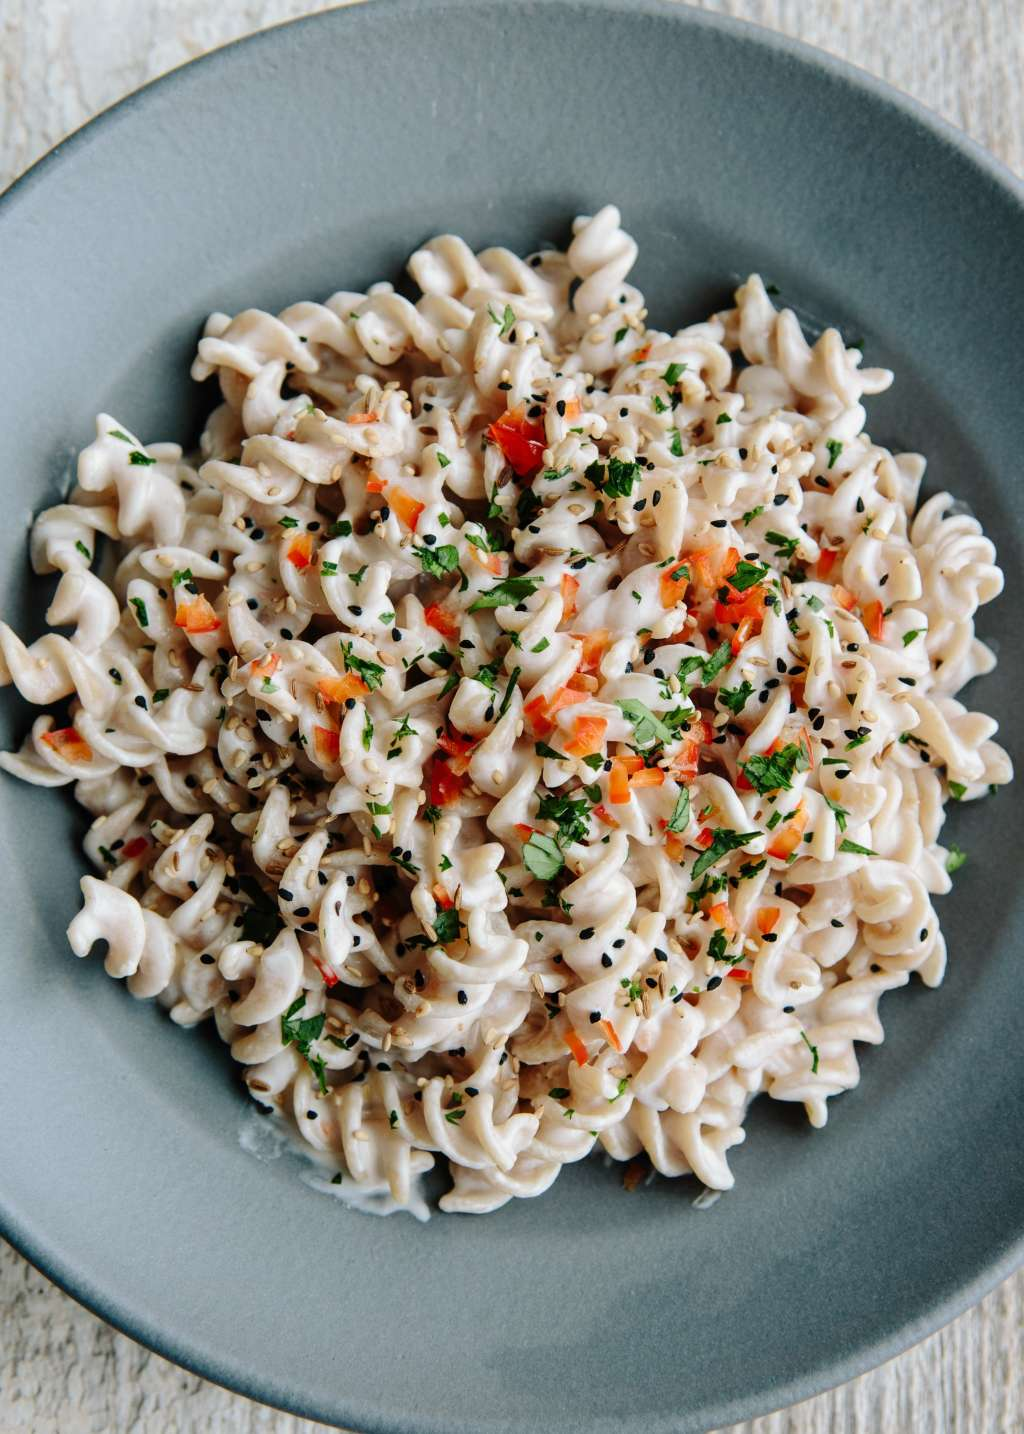 The Best Ways to Make Creamy Pasta Without Cream